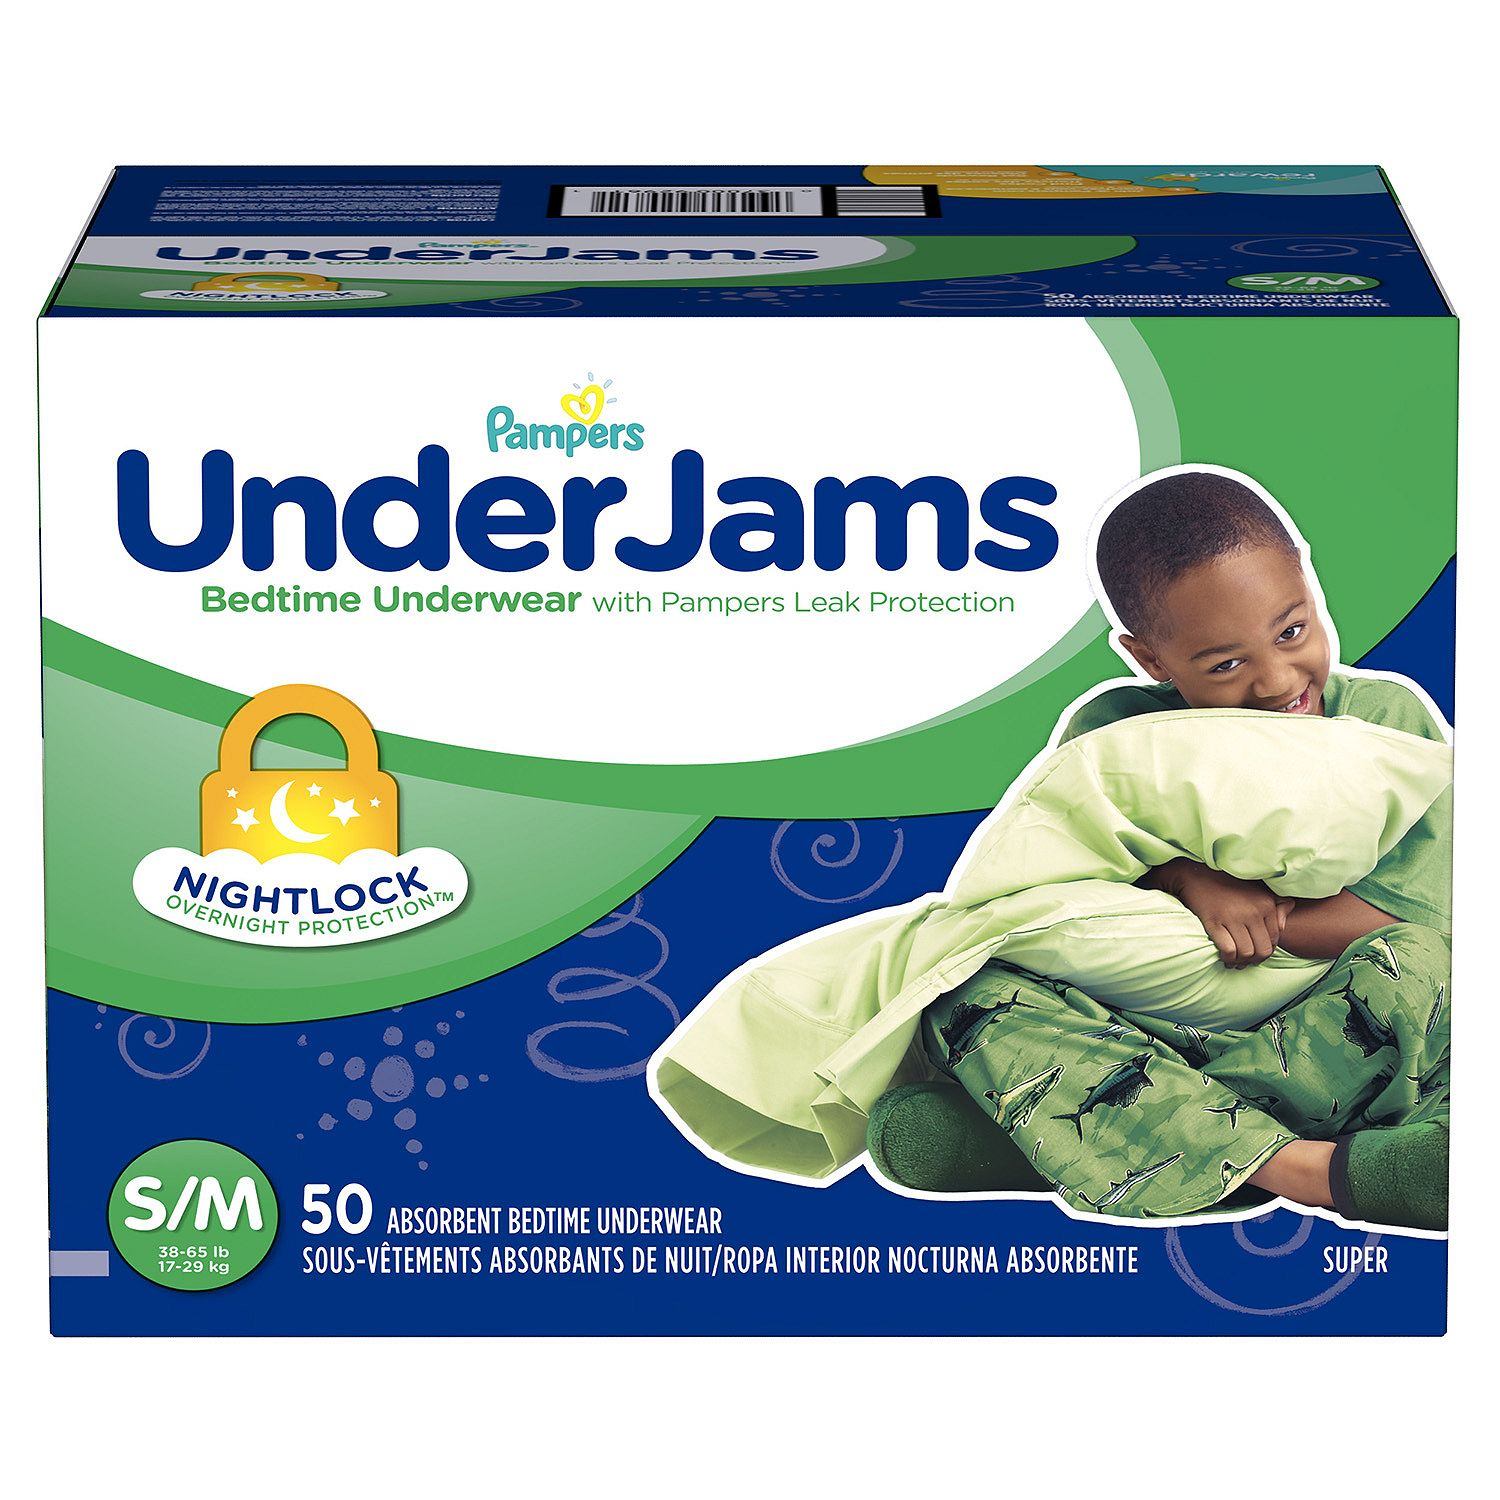 Pampers' UnderJams Bedtime Underwear for Boys Size S/M - 50 ct. ( Weight 38- 65 lb.) - Bulk Qty, Free Shipping - Comfortable Underwear